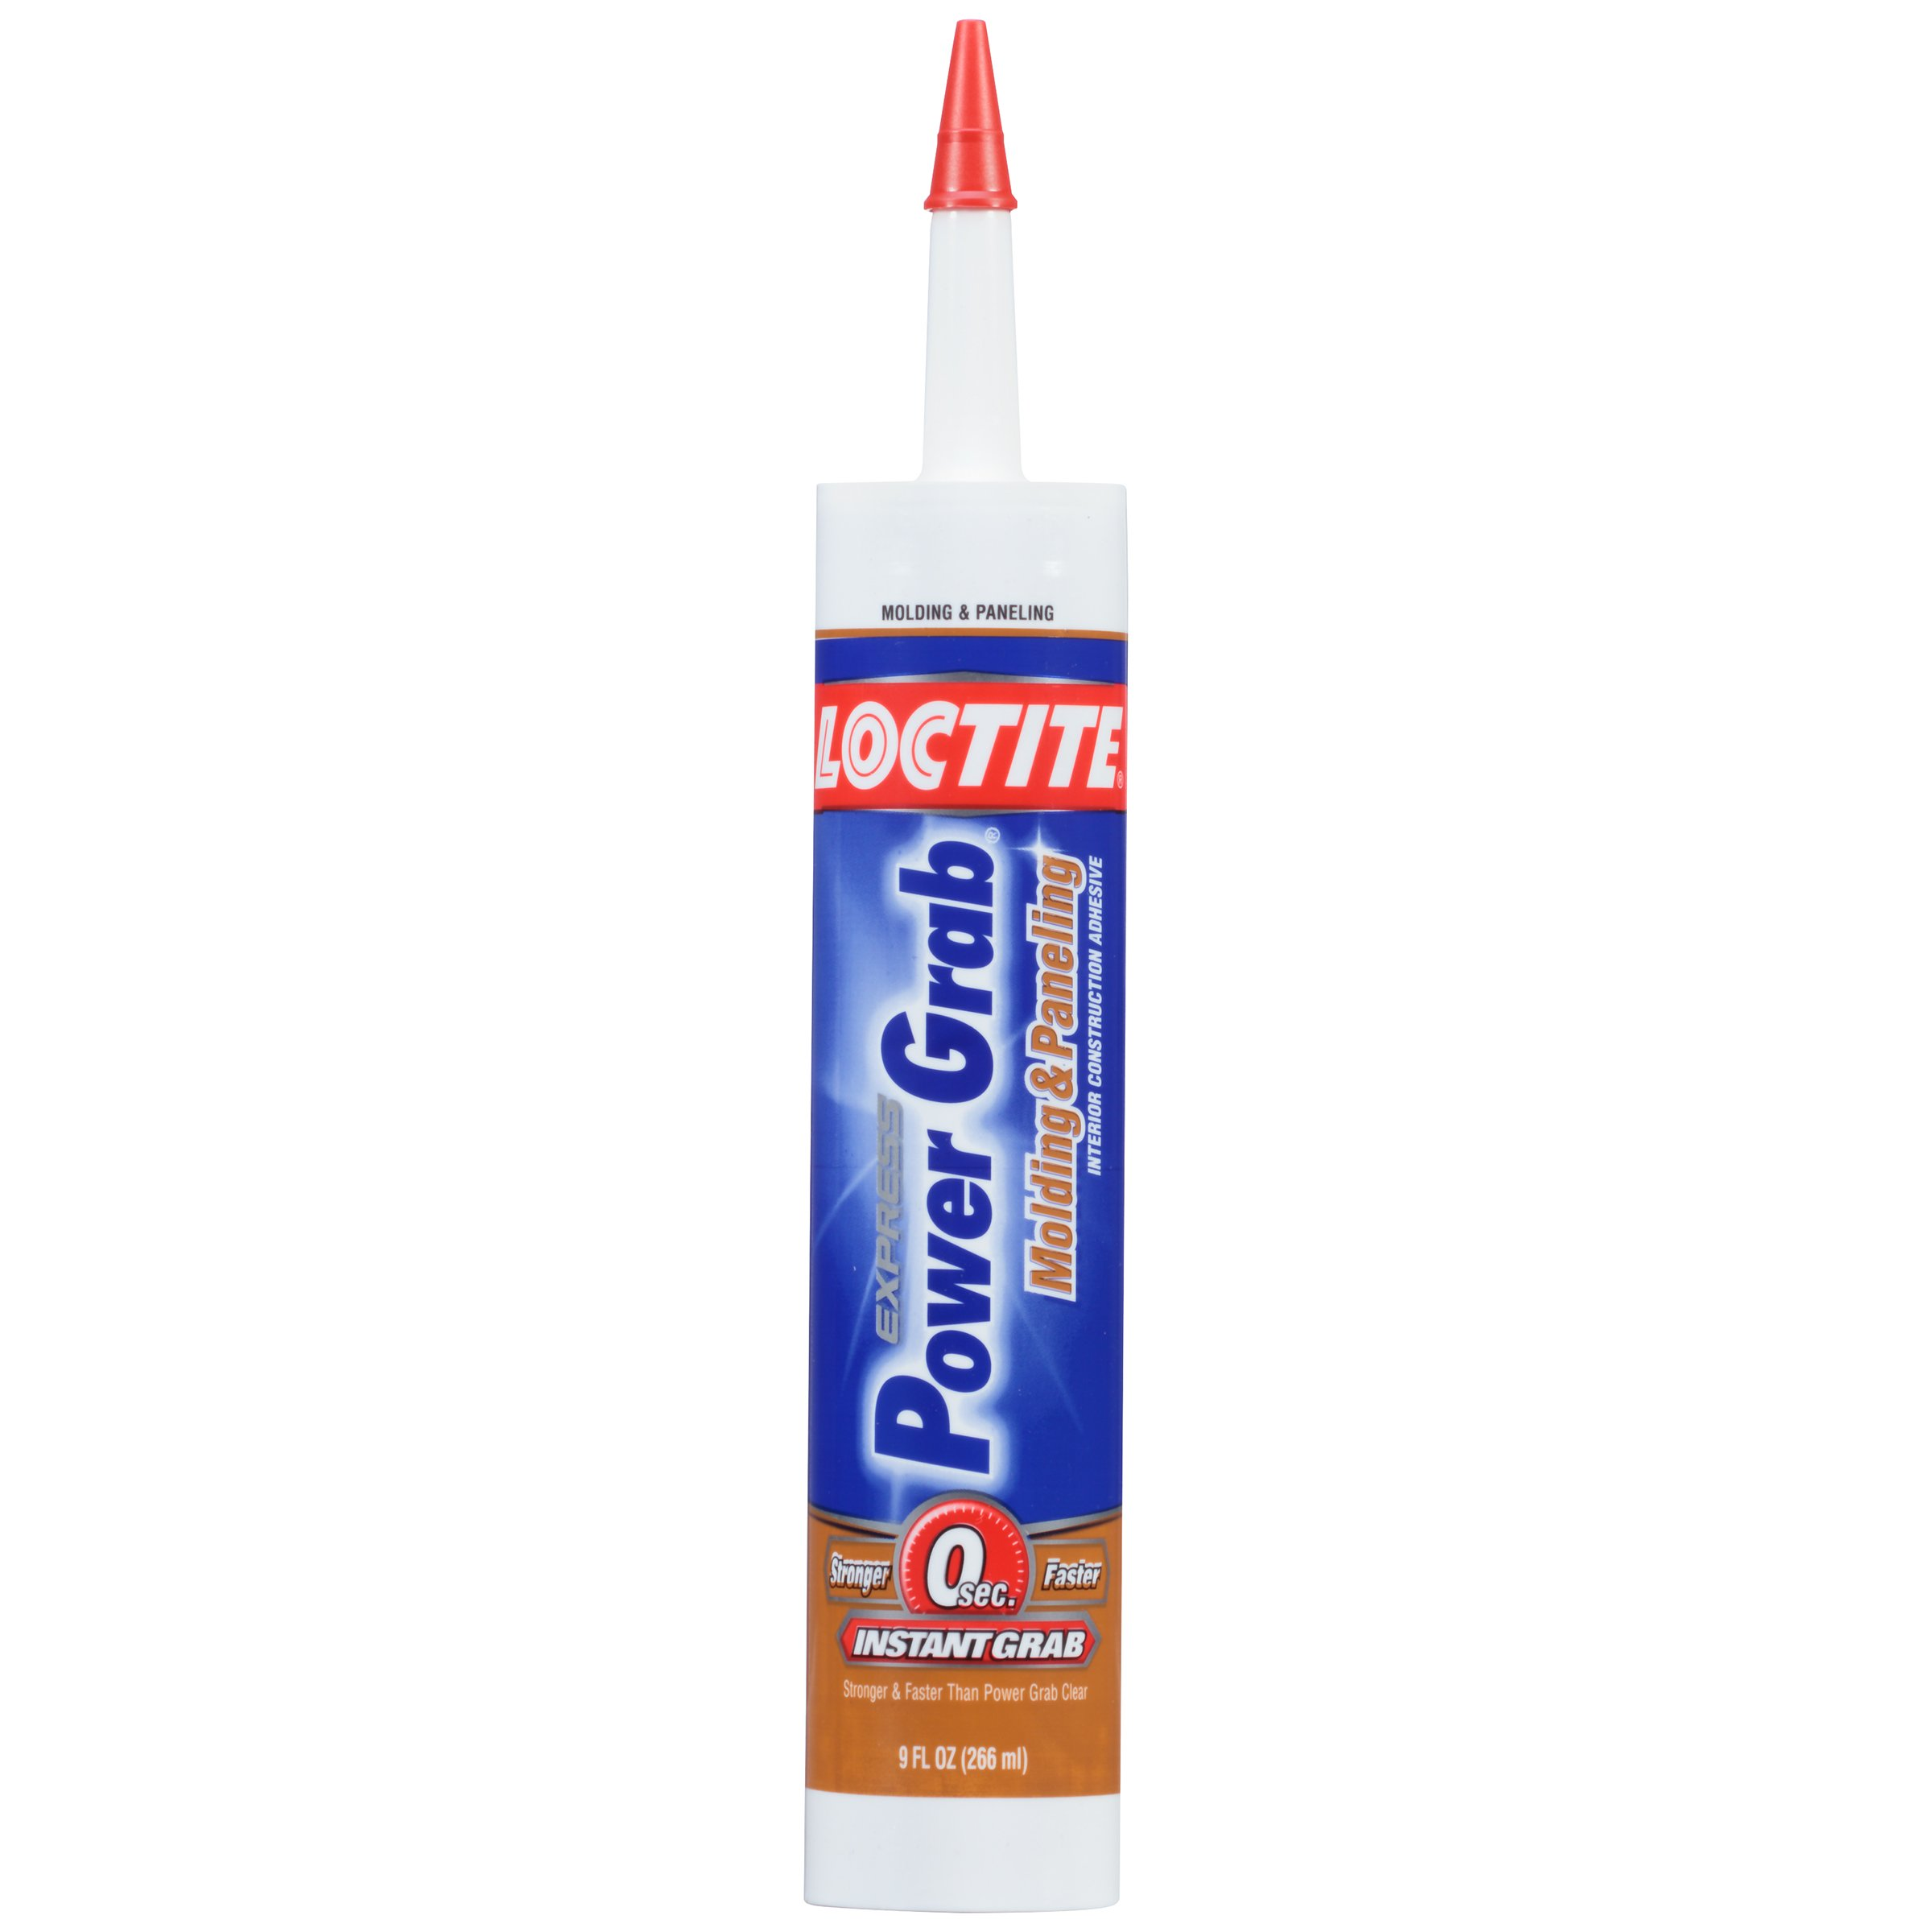 Loctite Power Grab Express Molding and Paneling Construction Adhesive, 9 Ounce Cartridge (2023759)